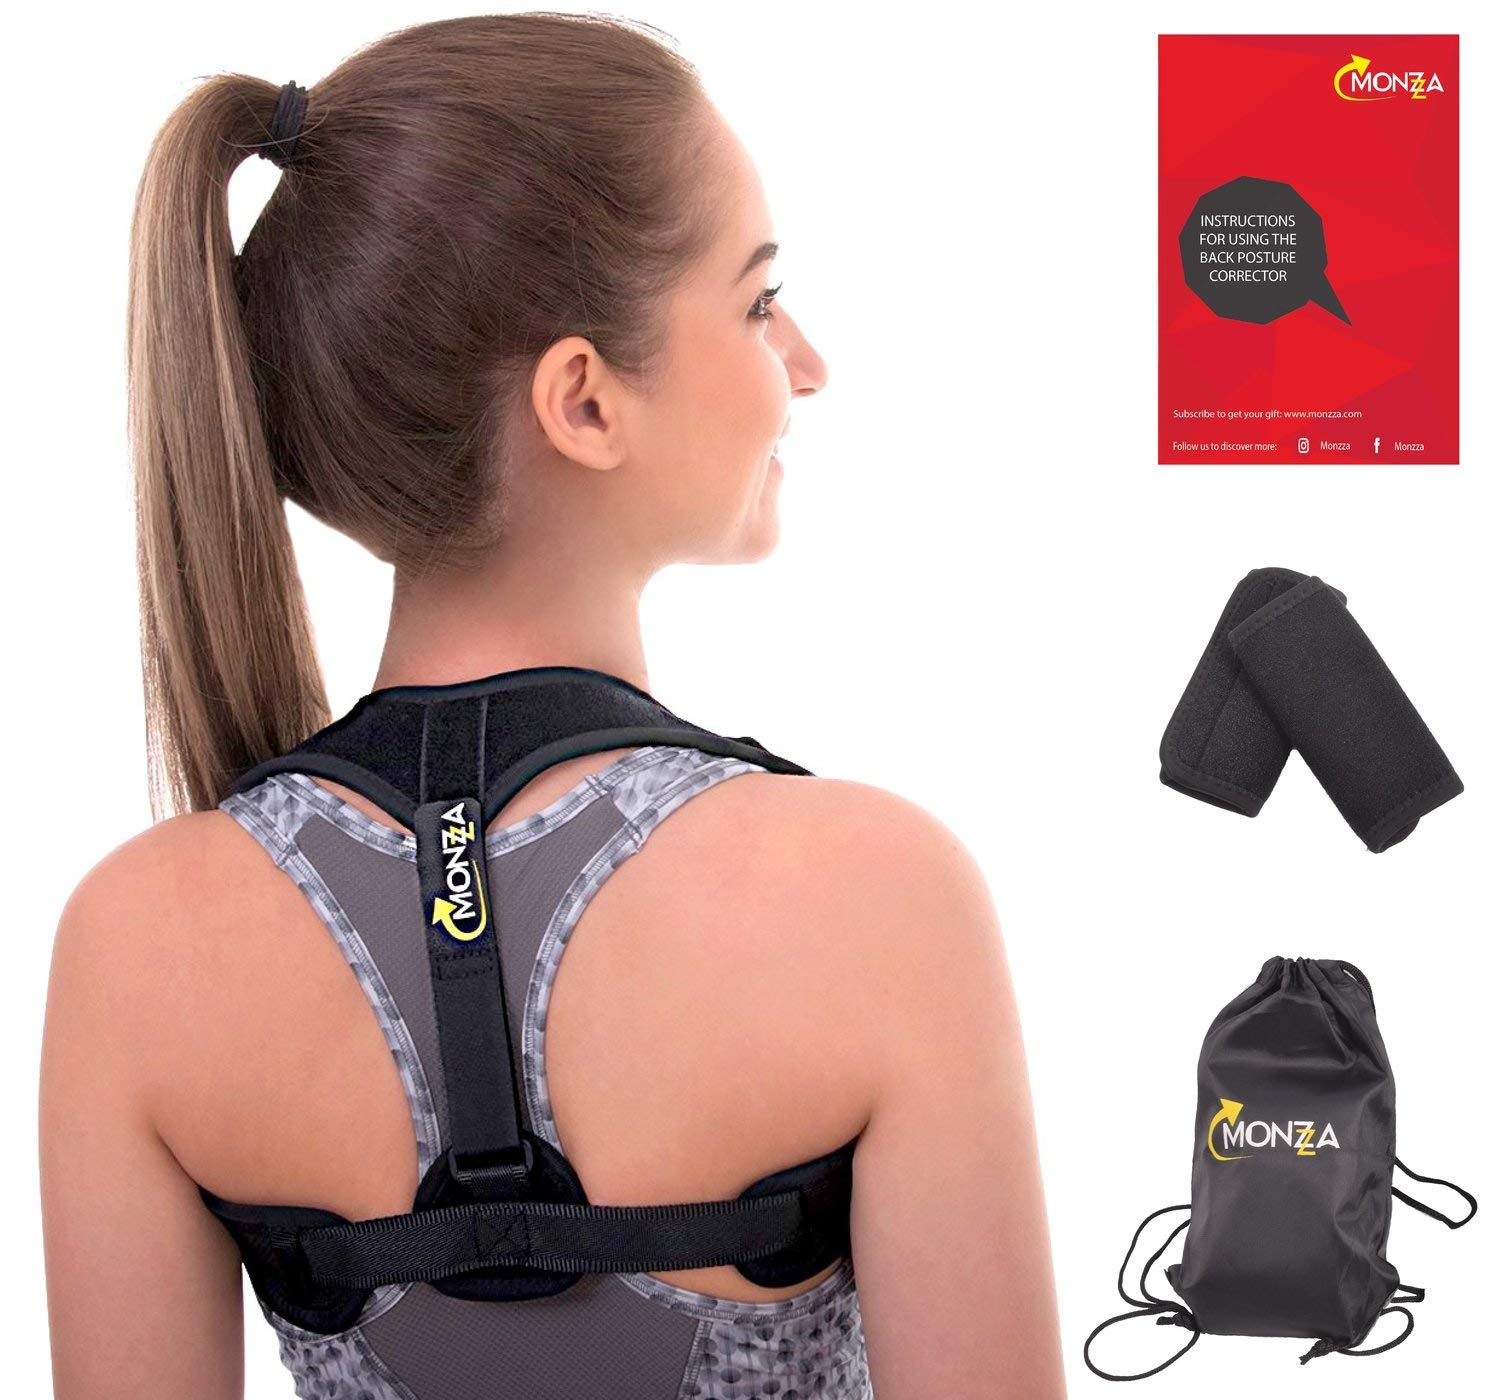 Monzza Bundle Back Posture Corrector for Women and Men | Effective and Comfortable Figure 8 Back Brace | Discreet Design Under Clothes | Primate Self Ajustable Posture | Fits Sizes 25'-50'